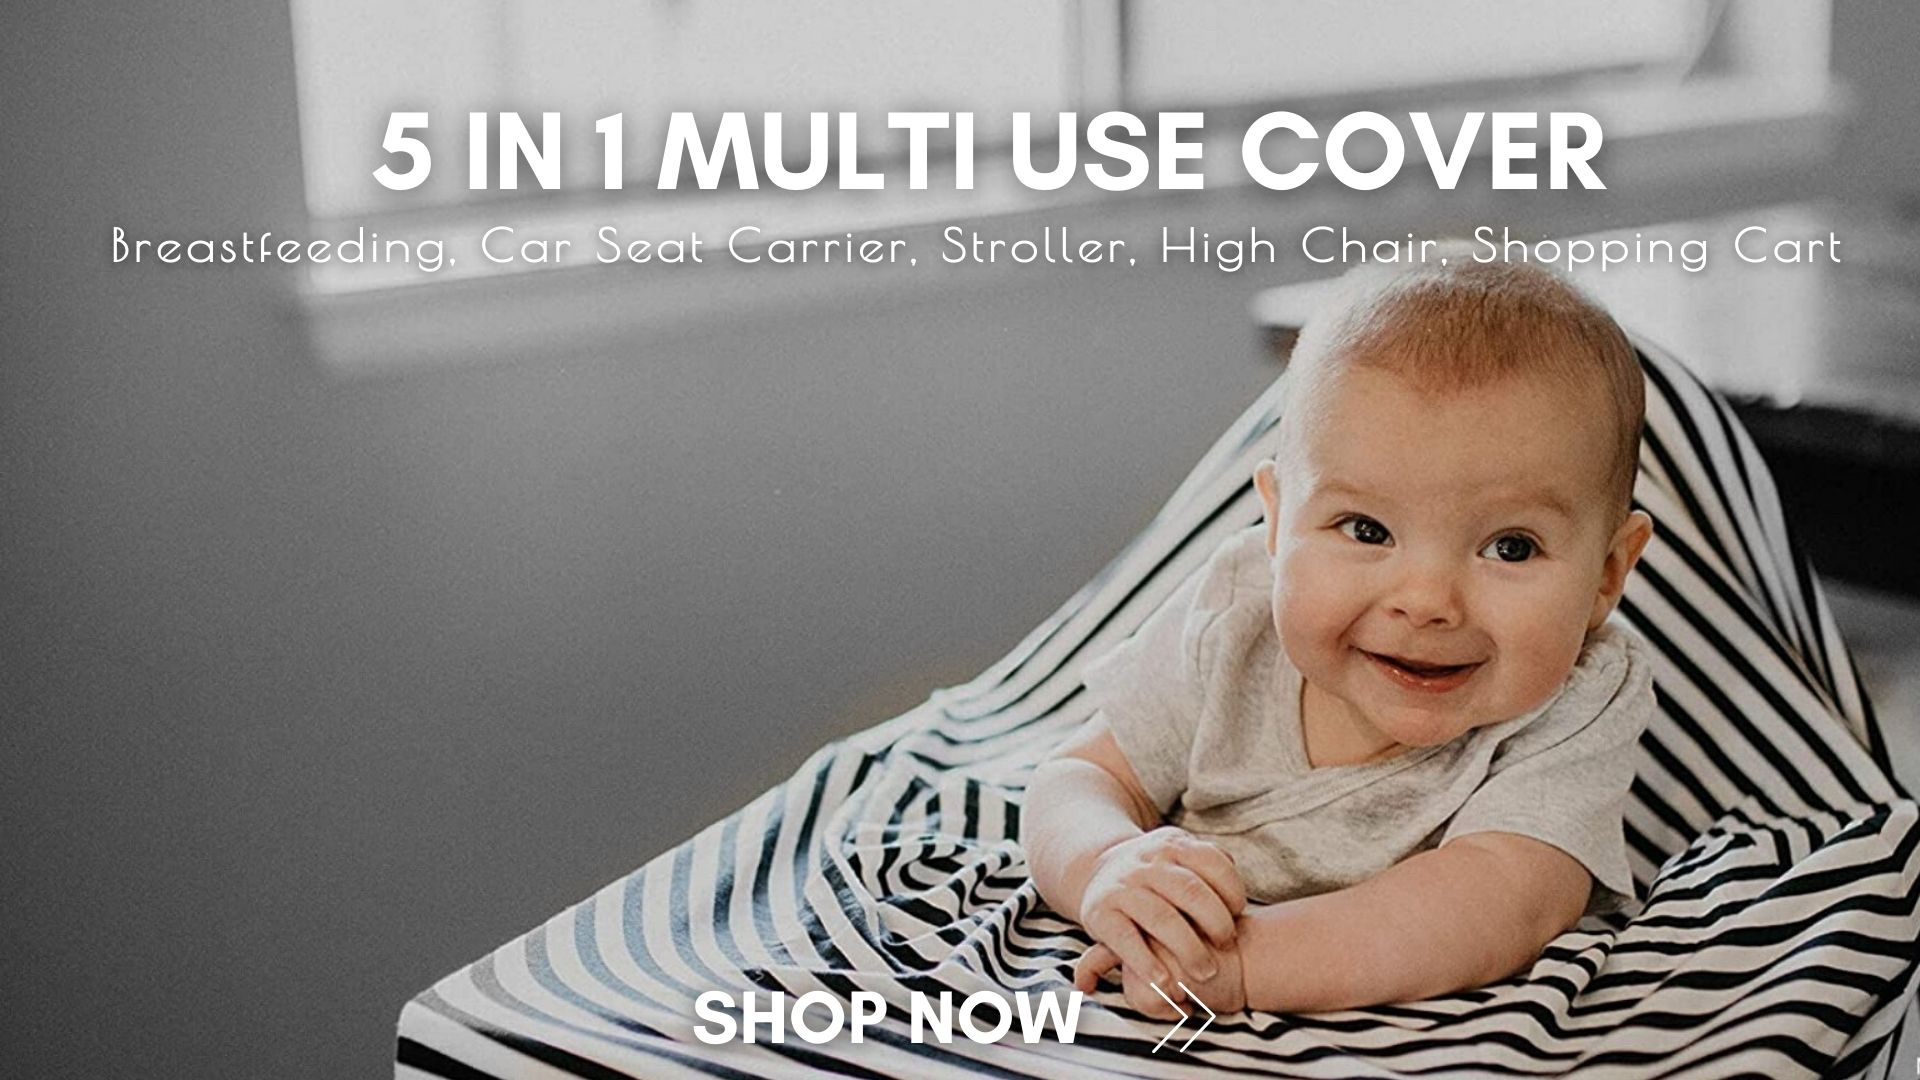 5 in 1 multi use cover for breastfeeding, stroller, car seat carrier, high chair ( Stokke Tripp Trapp, Ikea Antilop etc) and Shopping Cart. You can choose 5 color&pattern in our webshop.